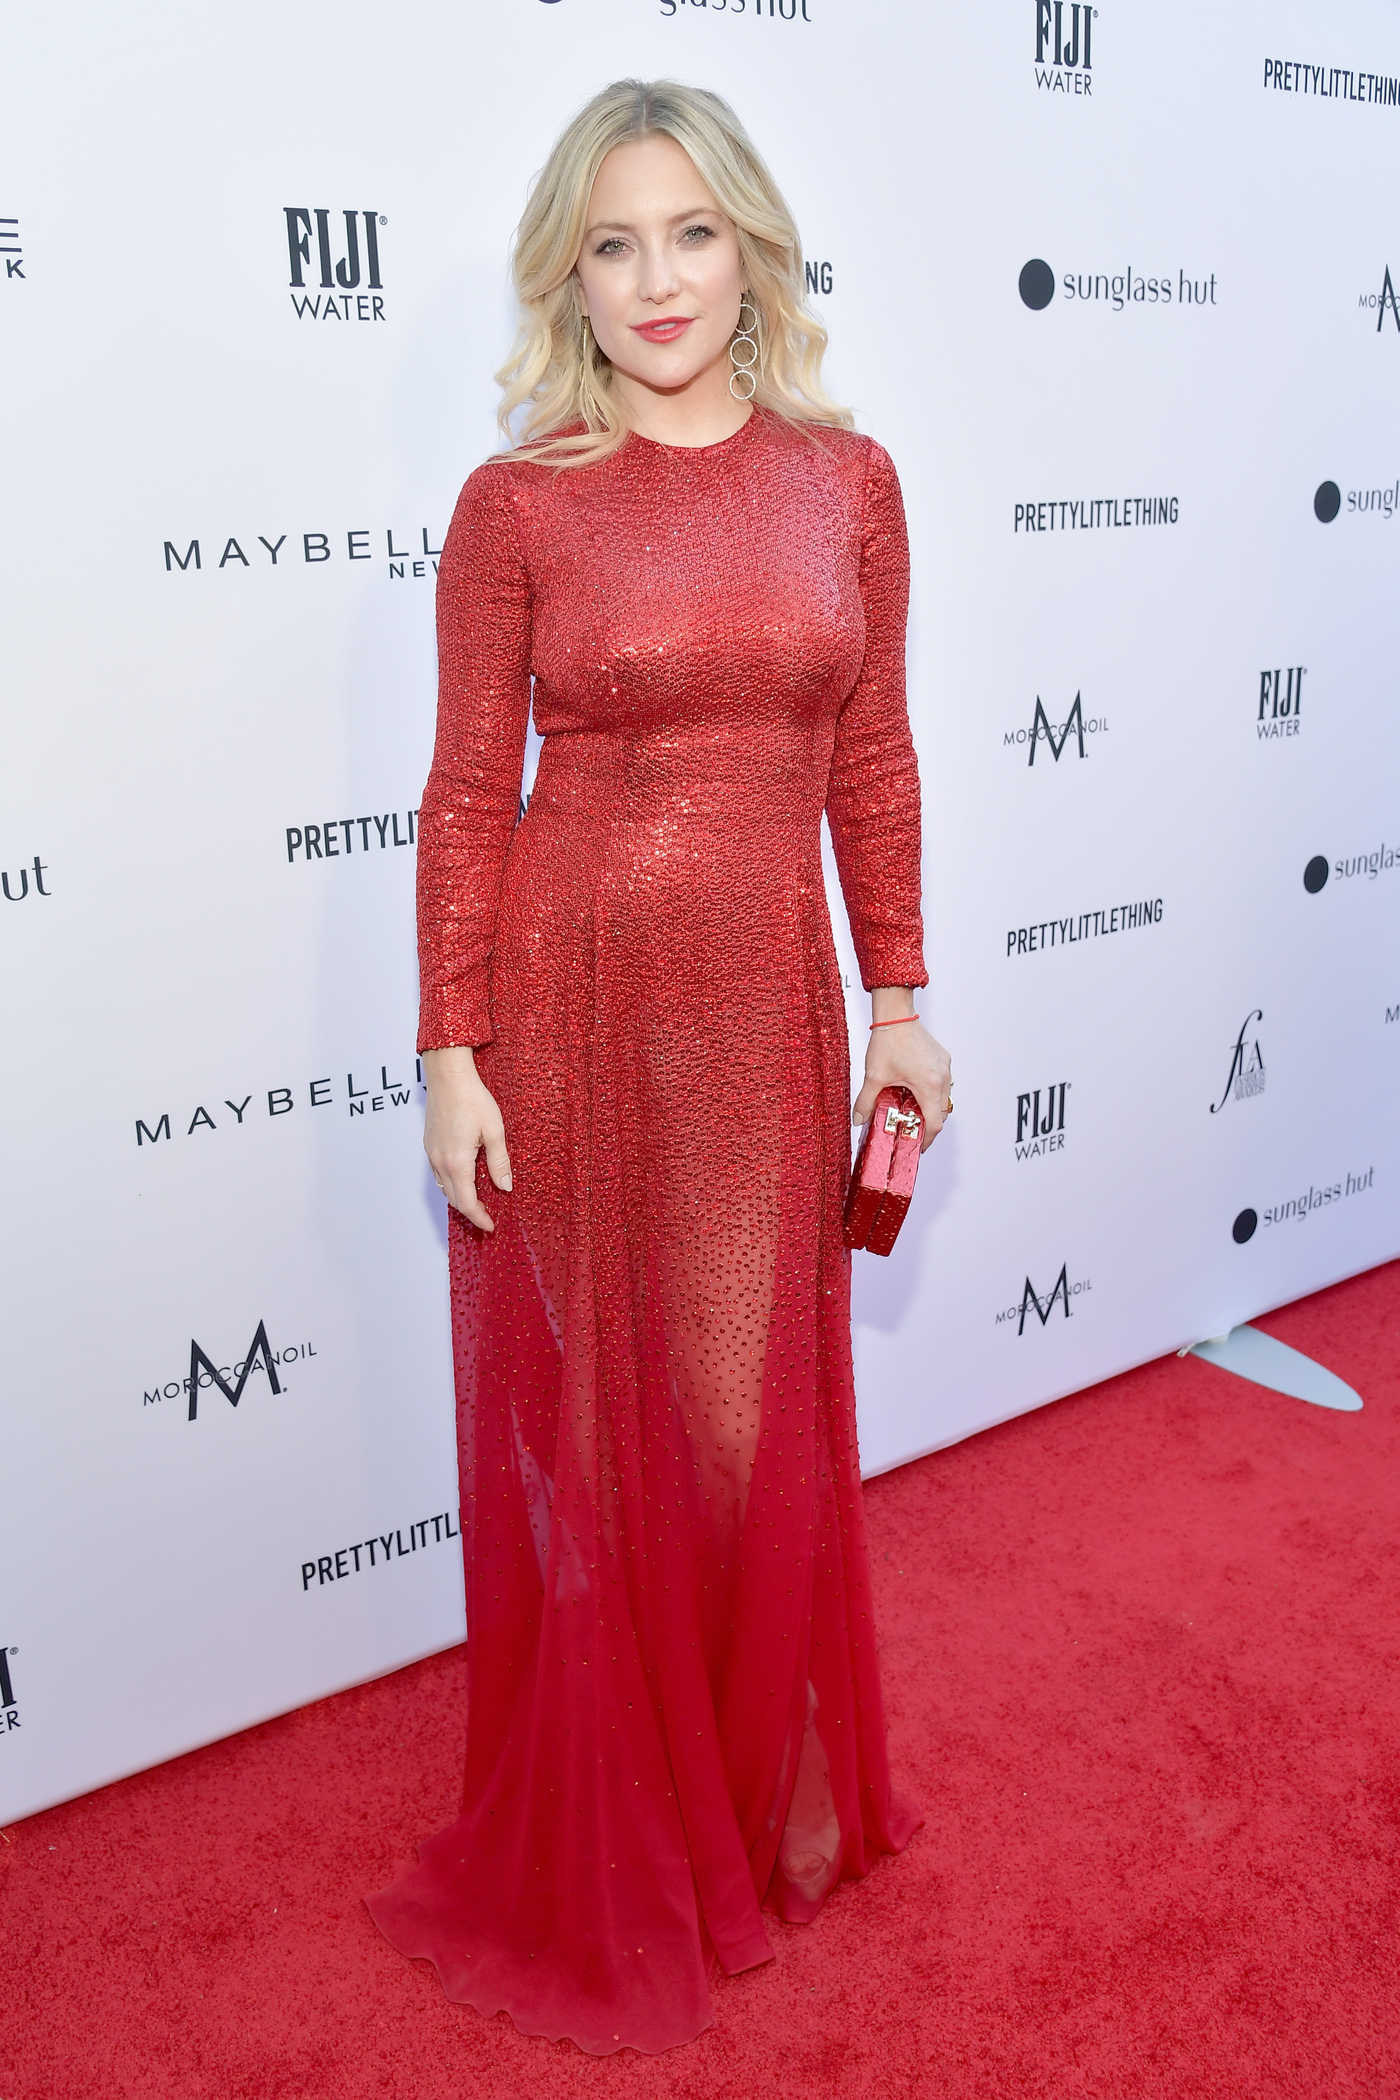 Kate Hudson Attends The Daily Front Row Fashion Awards at The Beverly Hills Hotel in Los Angeles 03/17/2019